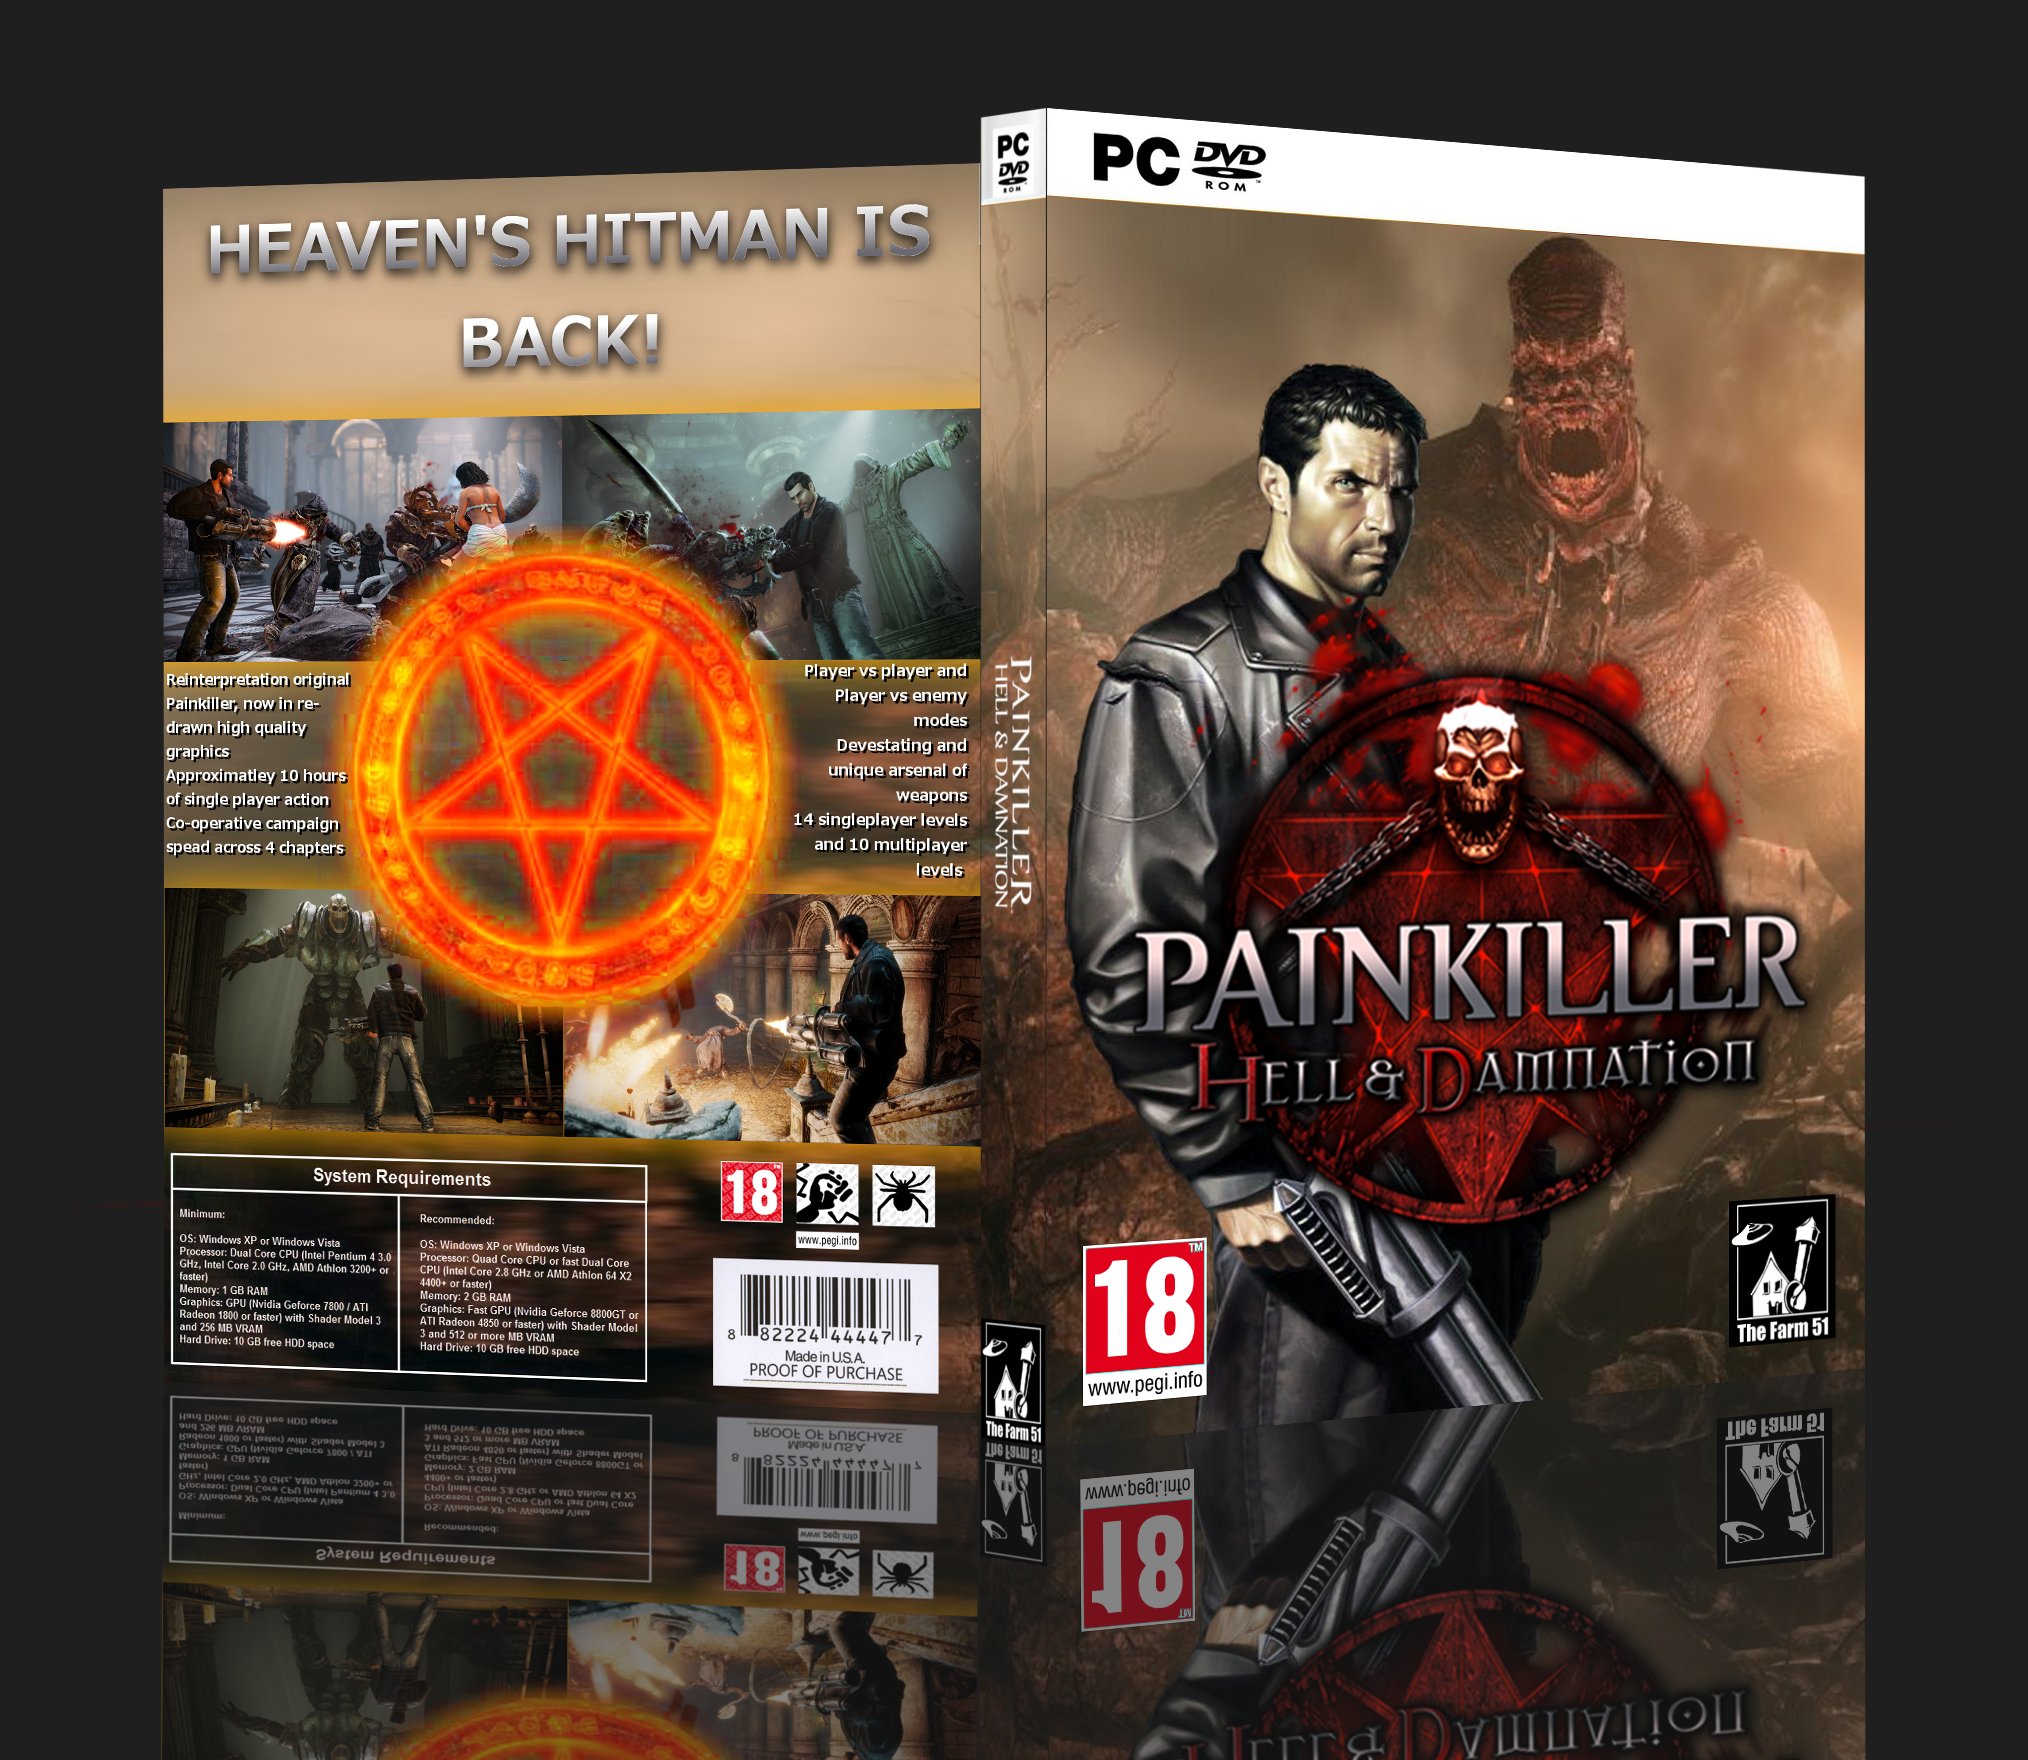 Viewing full size Painkiller: Hell & Damnation box cover by